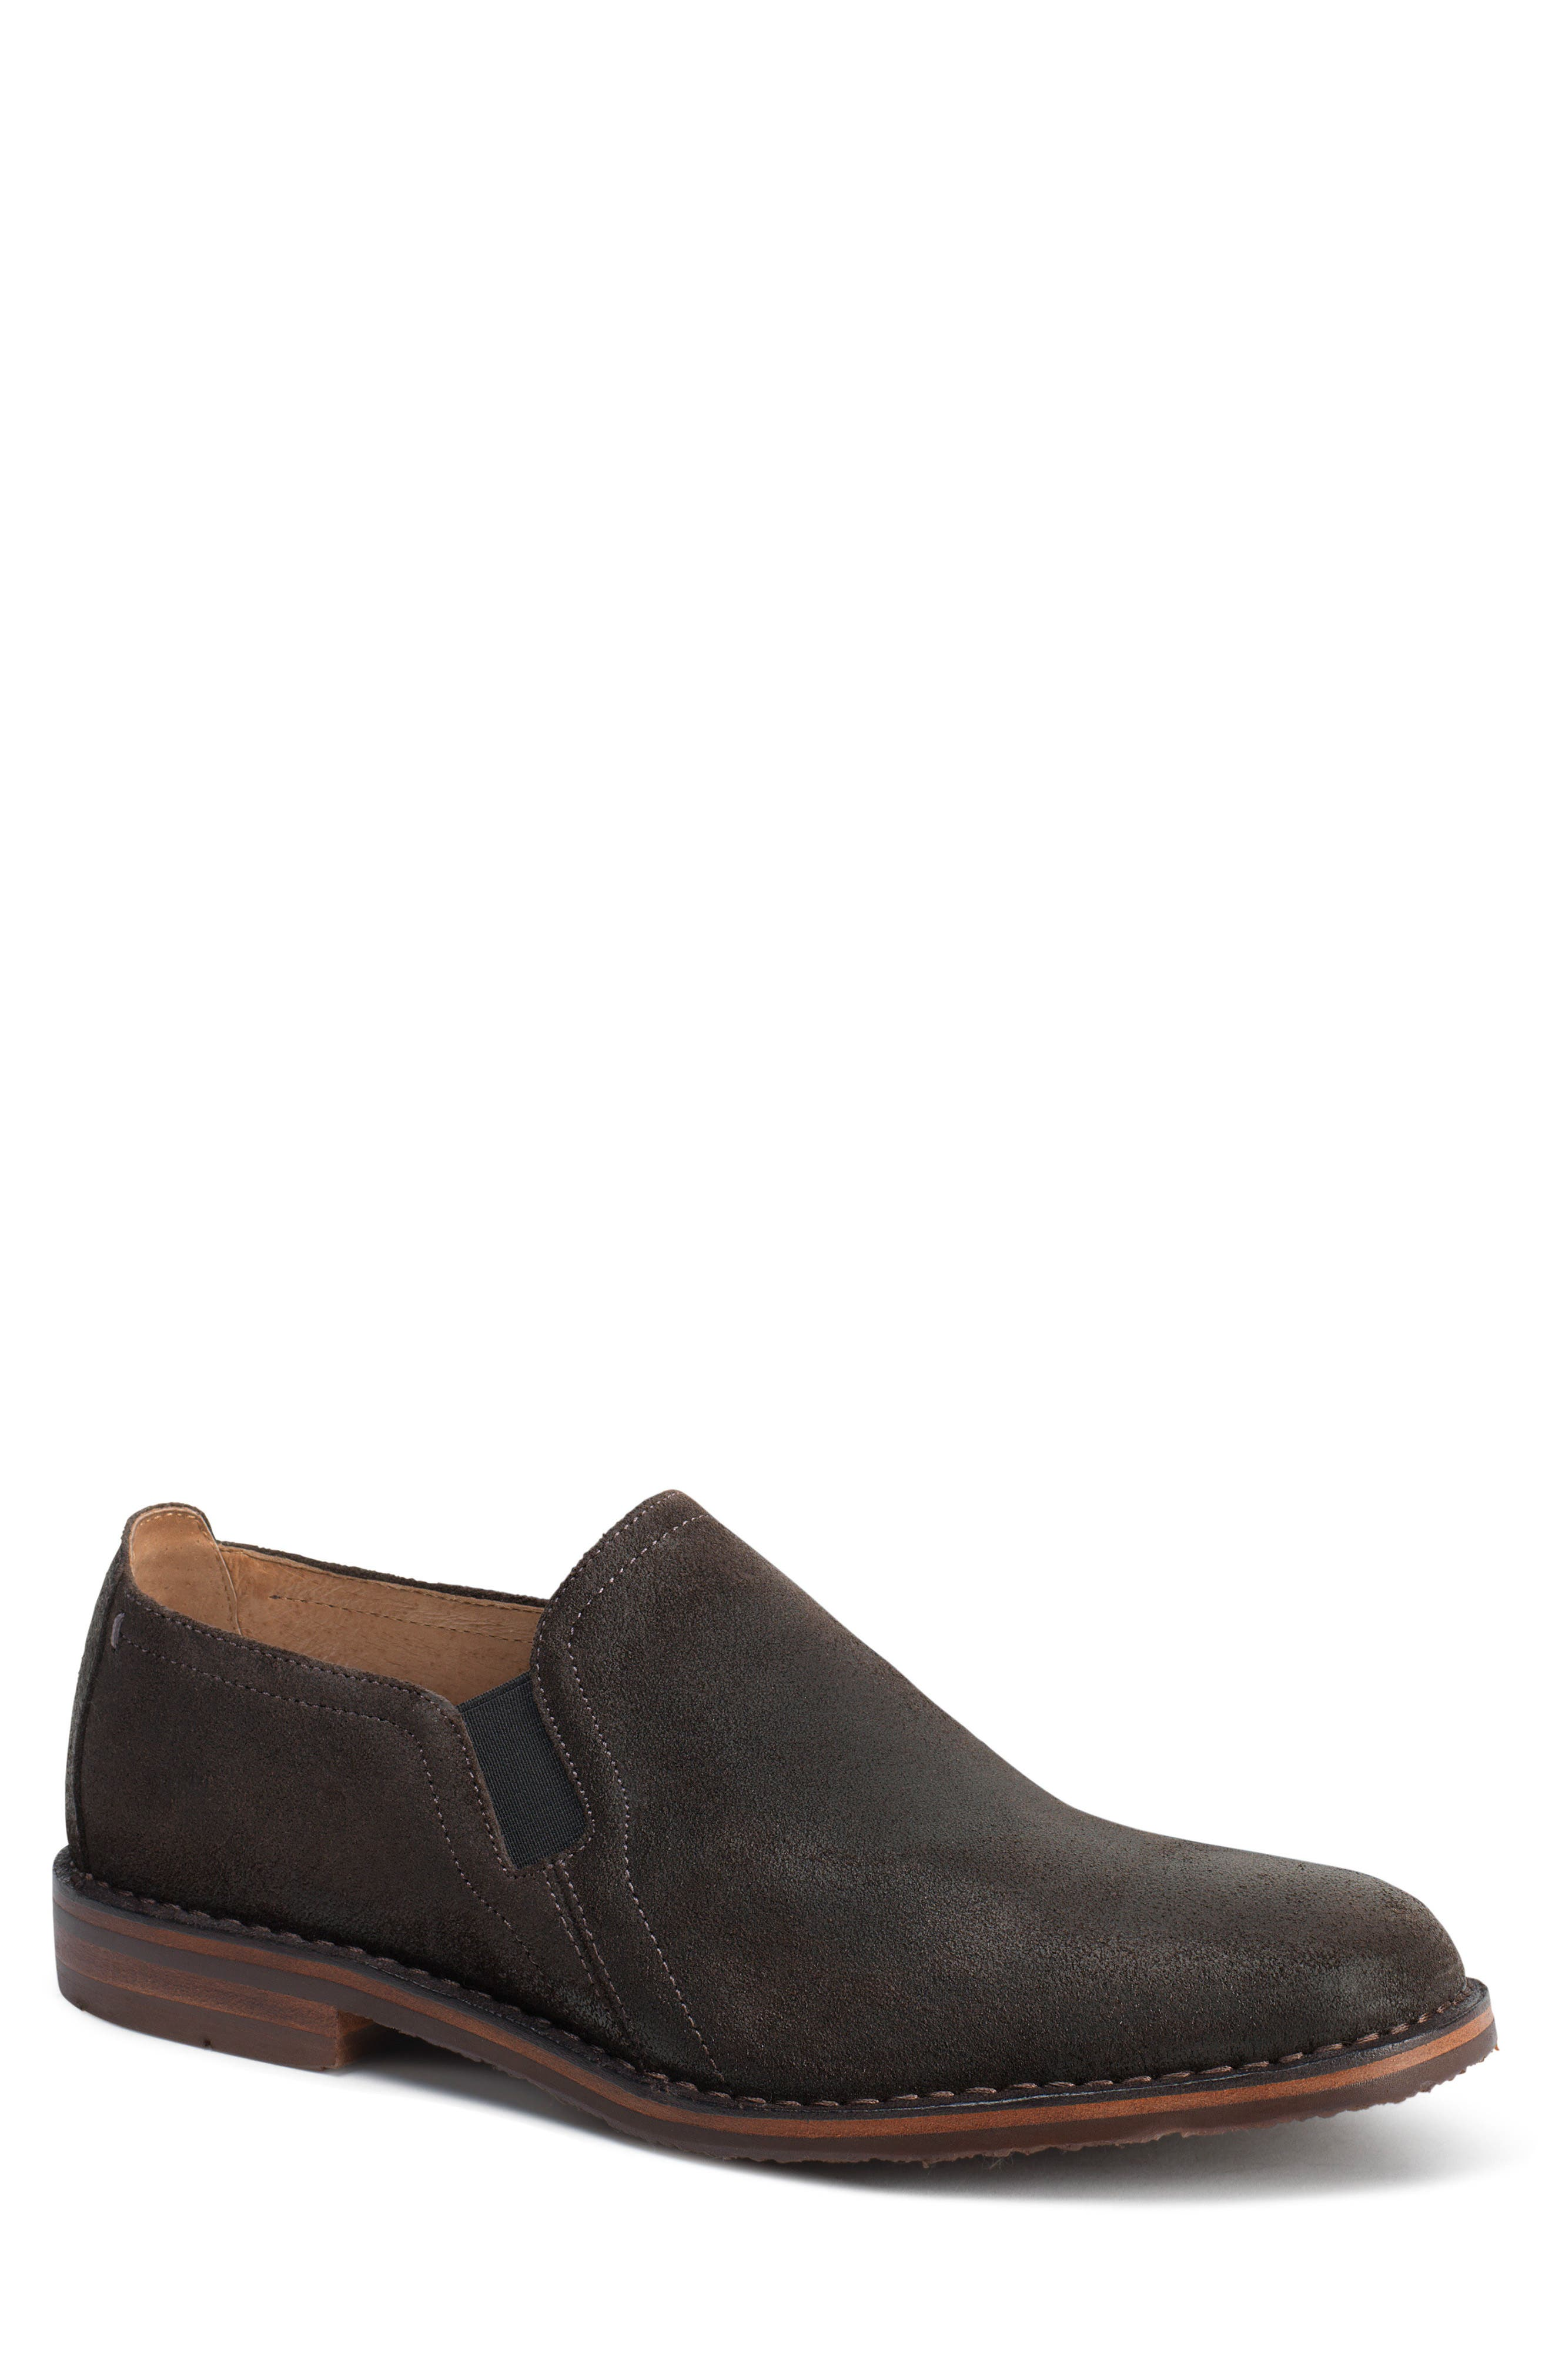 'Blaine' Venetian Loafer,                             Main thumbnail 1, color,                             Gray Waxed Suede